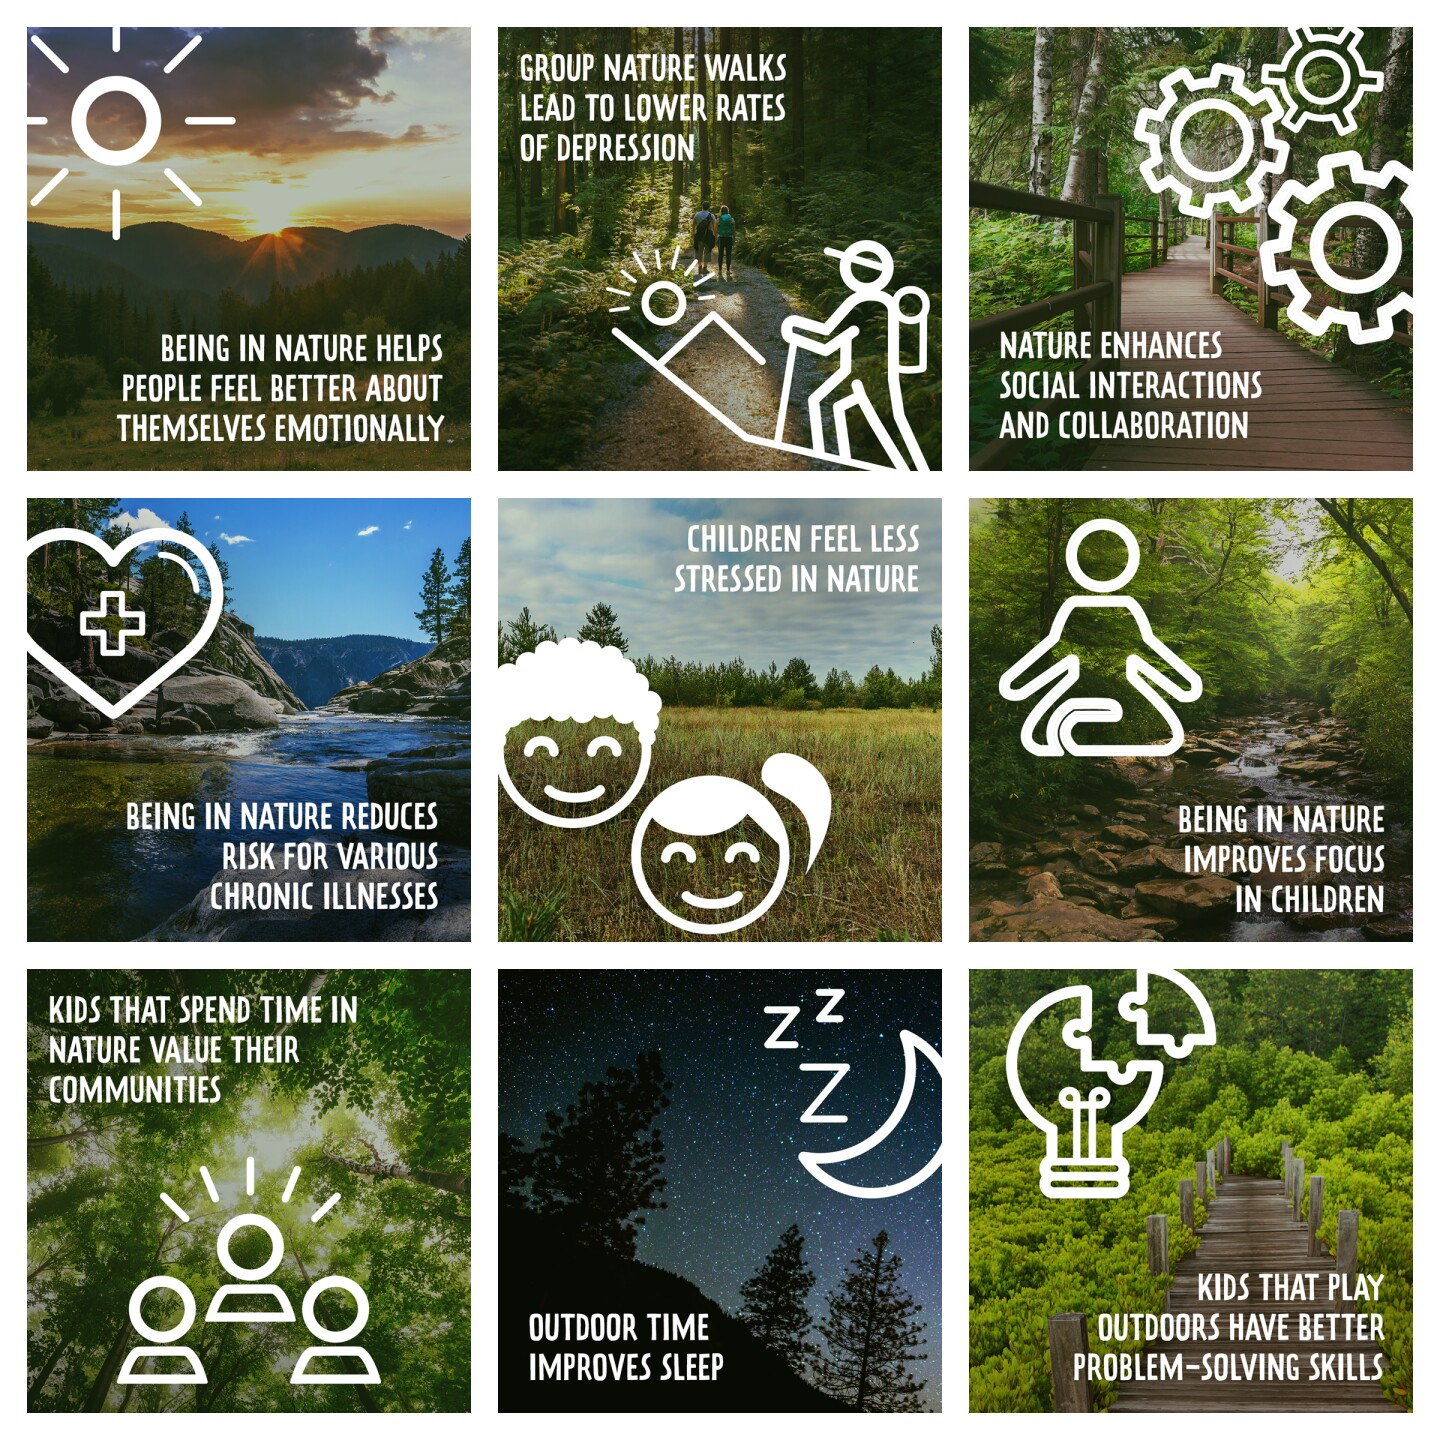 Images and copy that showcase the many health benefits one can find in nature like reduced stress